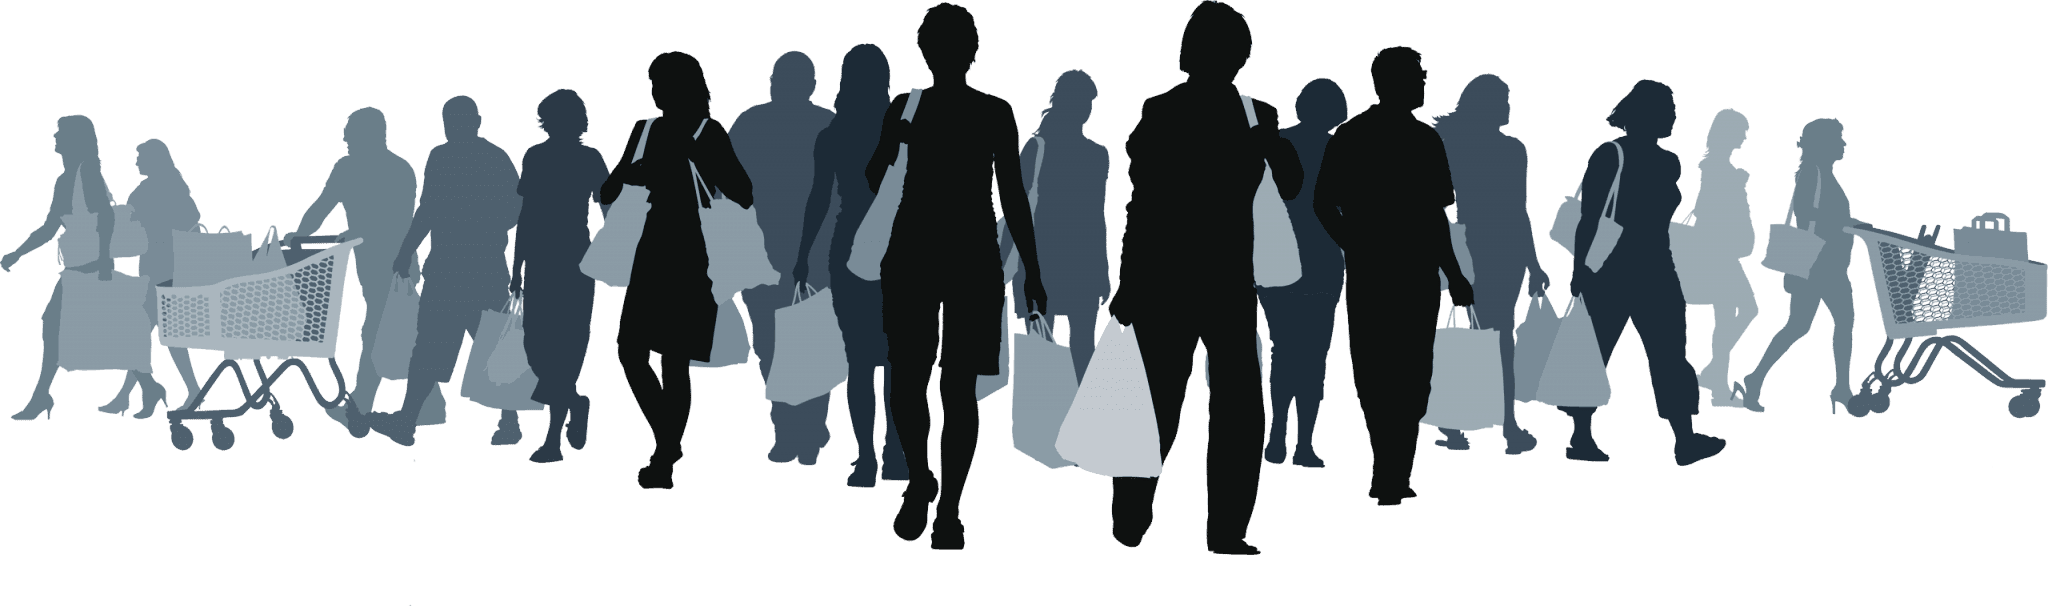 shopping_people_background